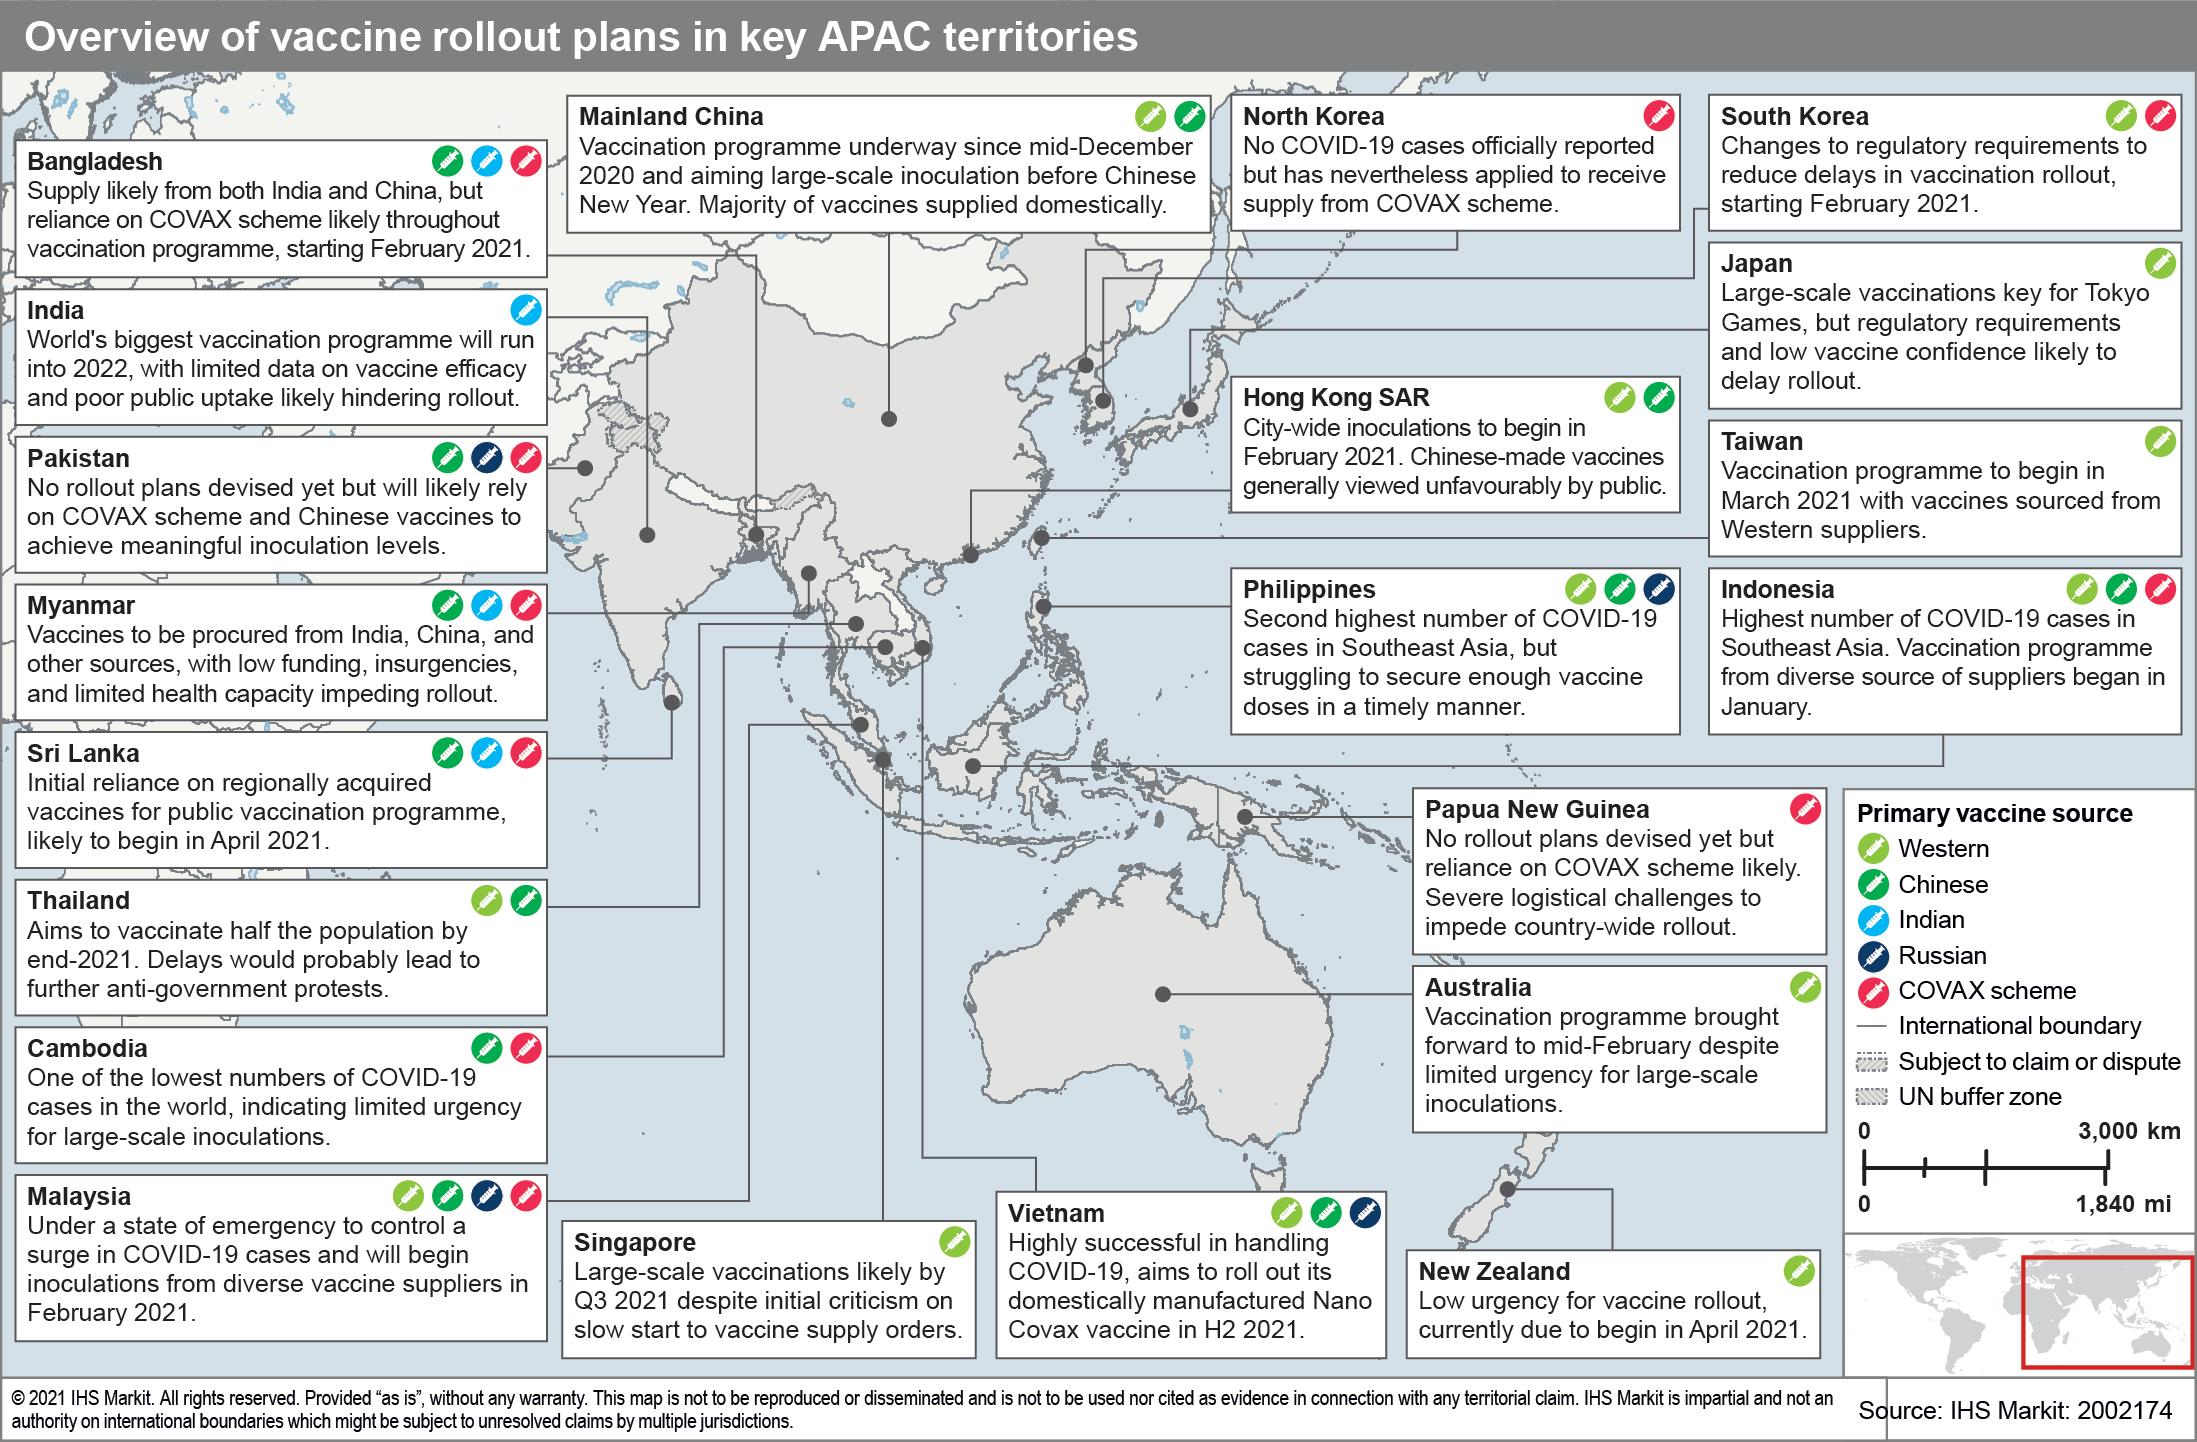 Overview of vaccine rollout plans in key APAC territories